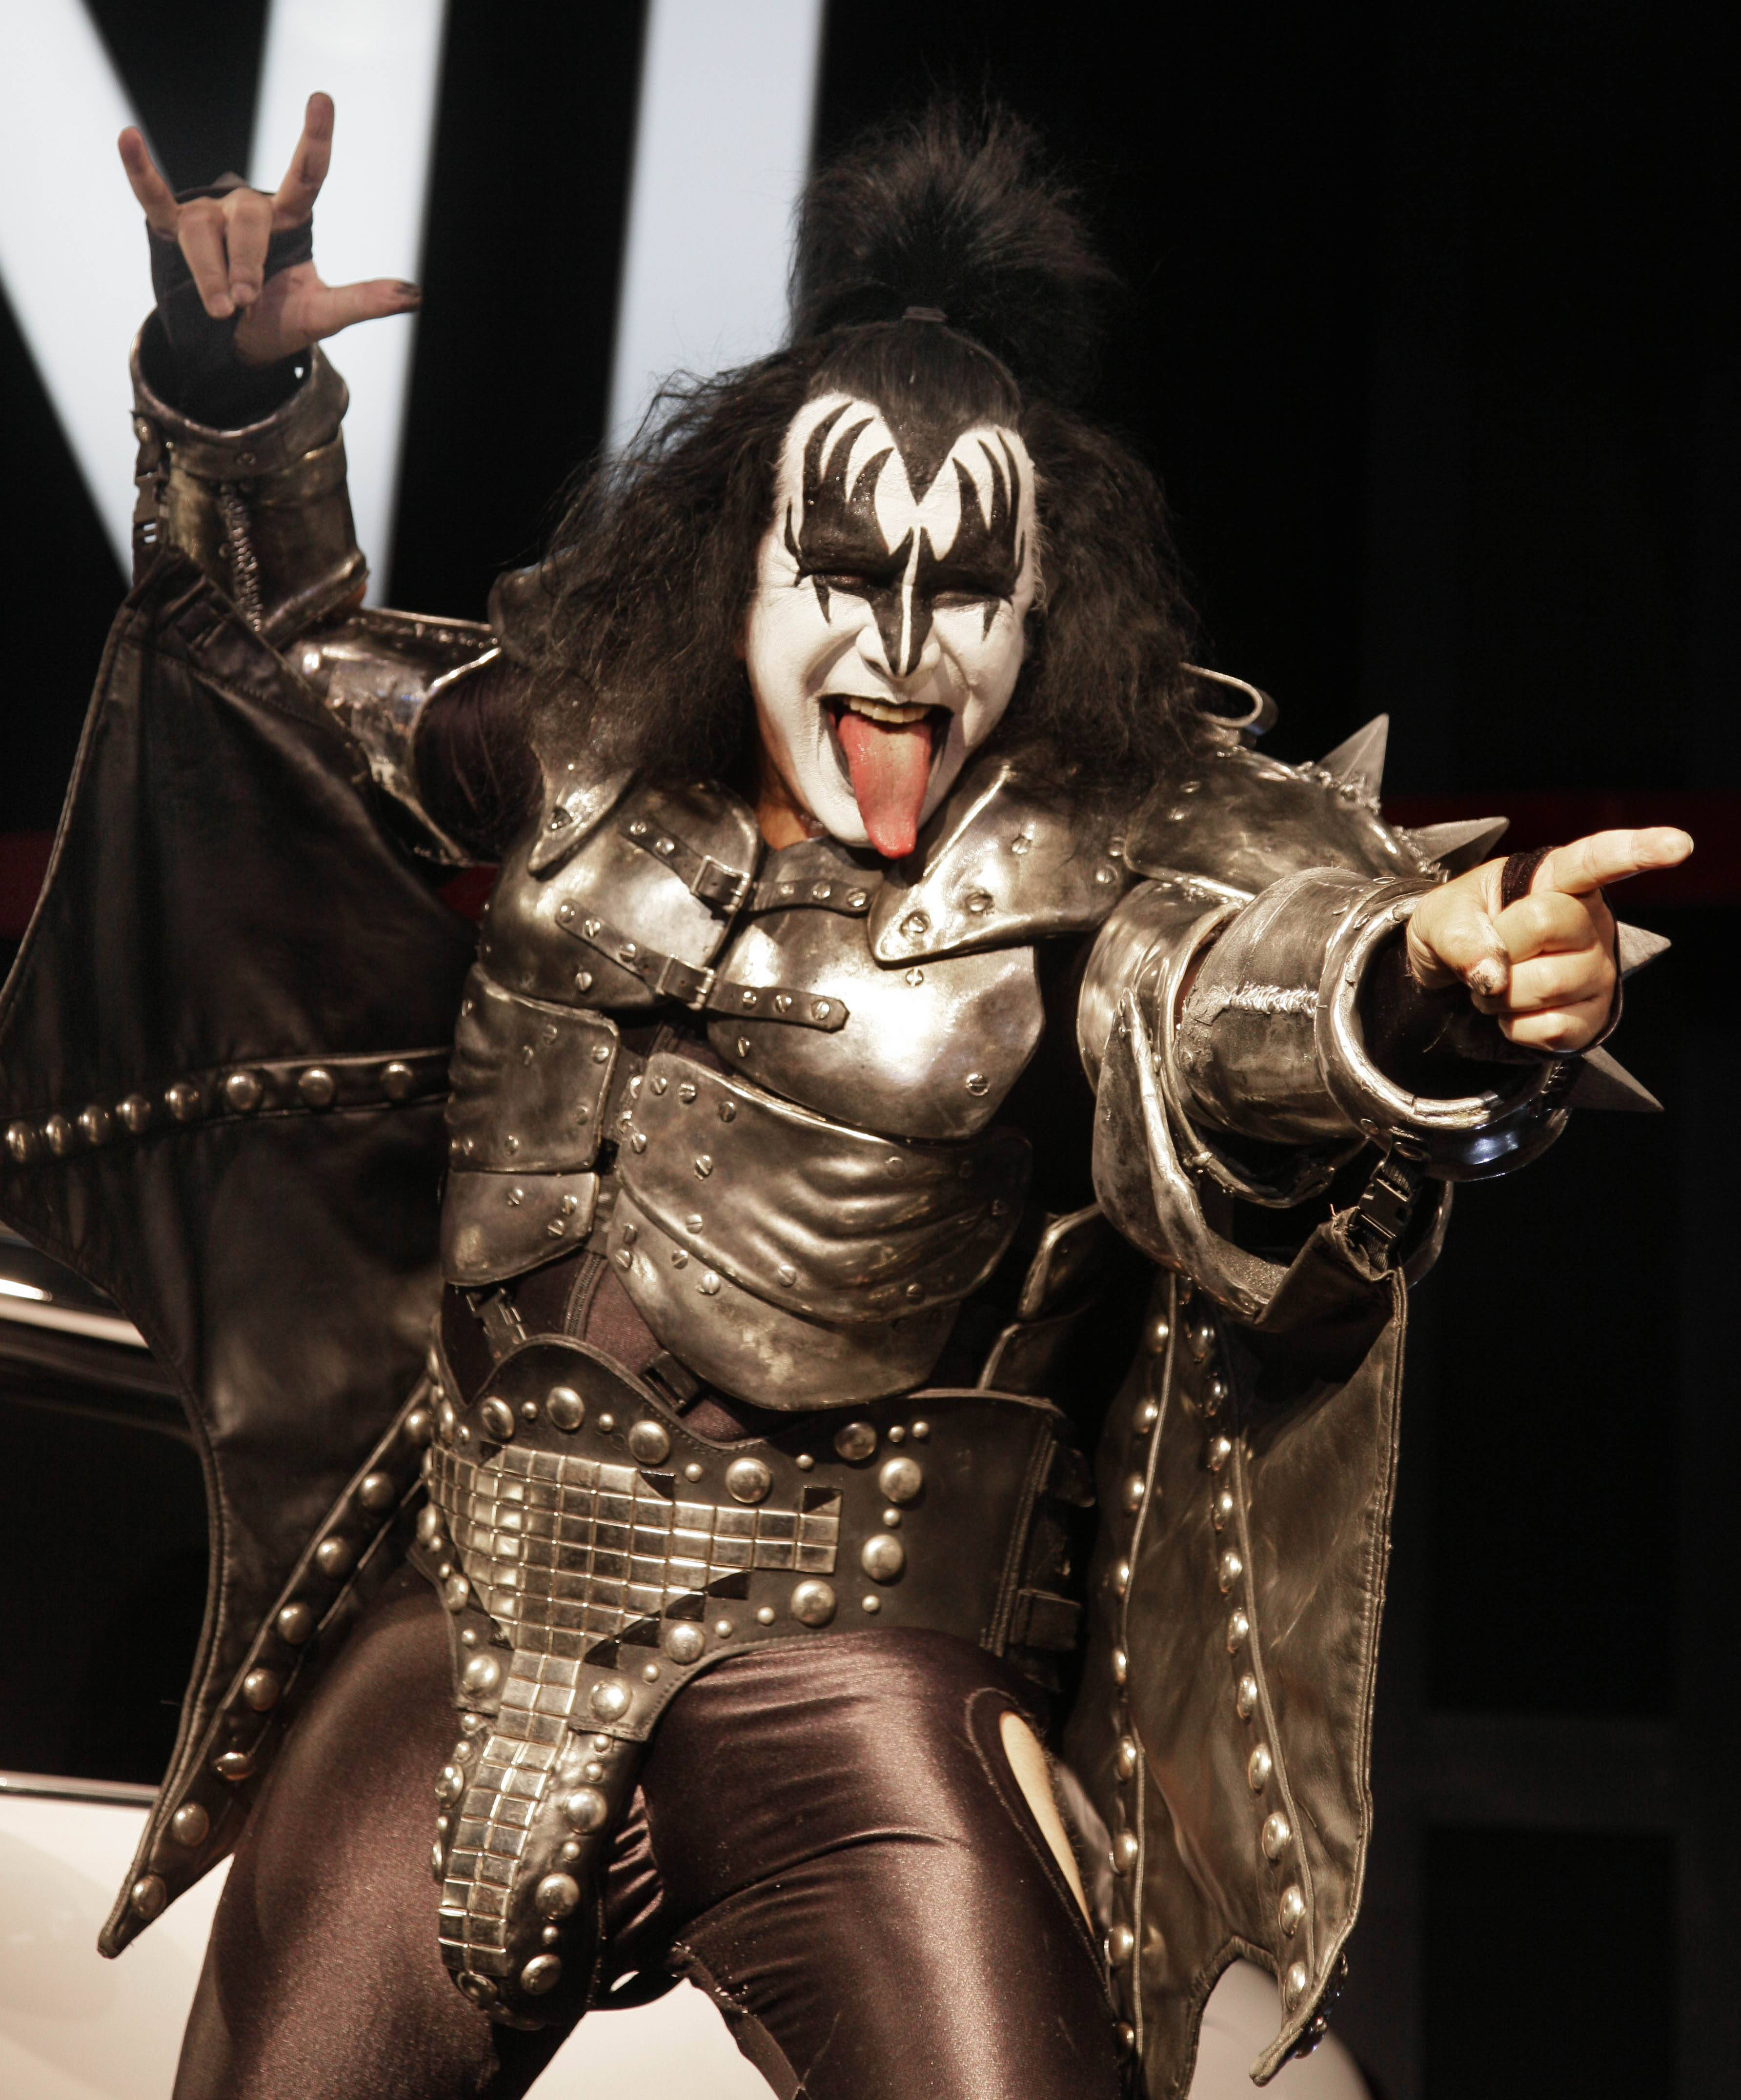 On Tuesday, Gene Simmons and Kiss were dropped from the Michael Jackson tribute show that's set for October, concert organizers said.